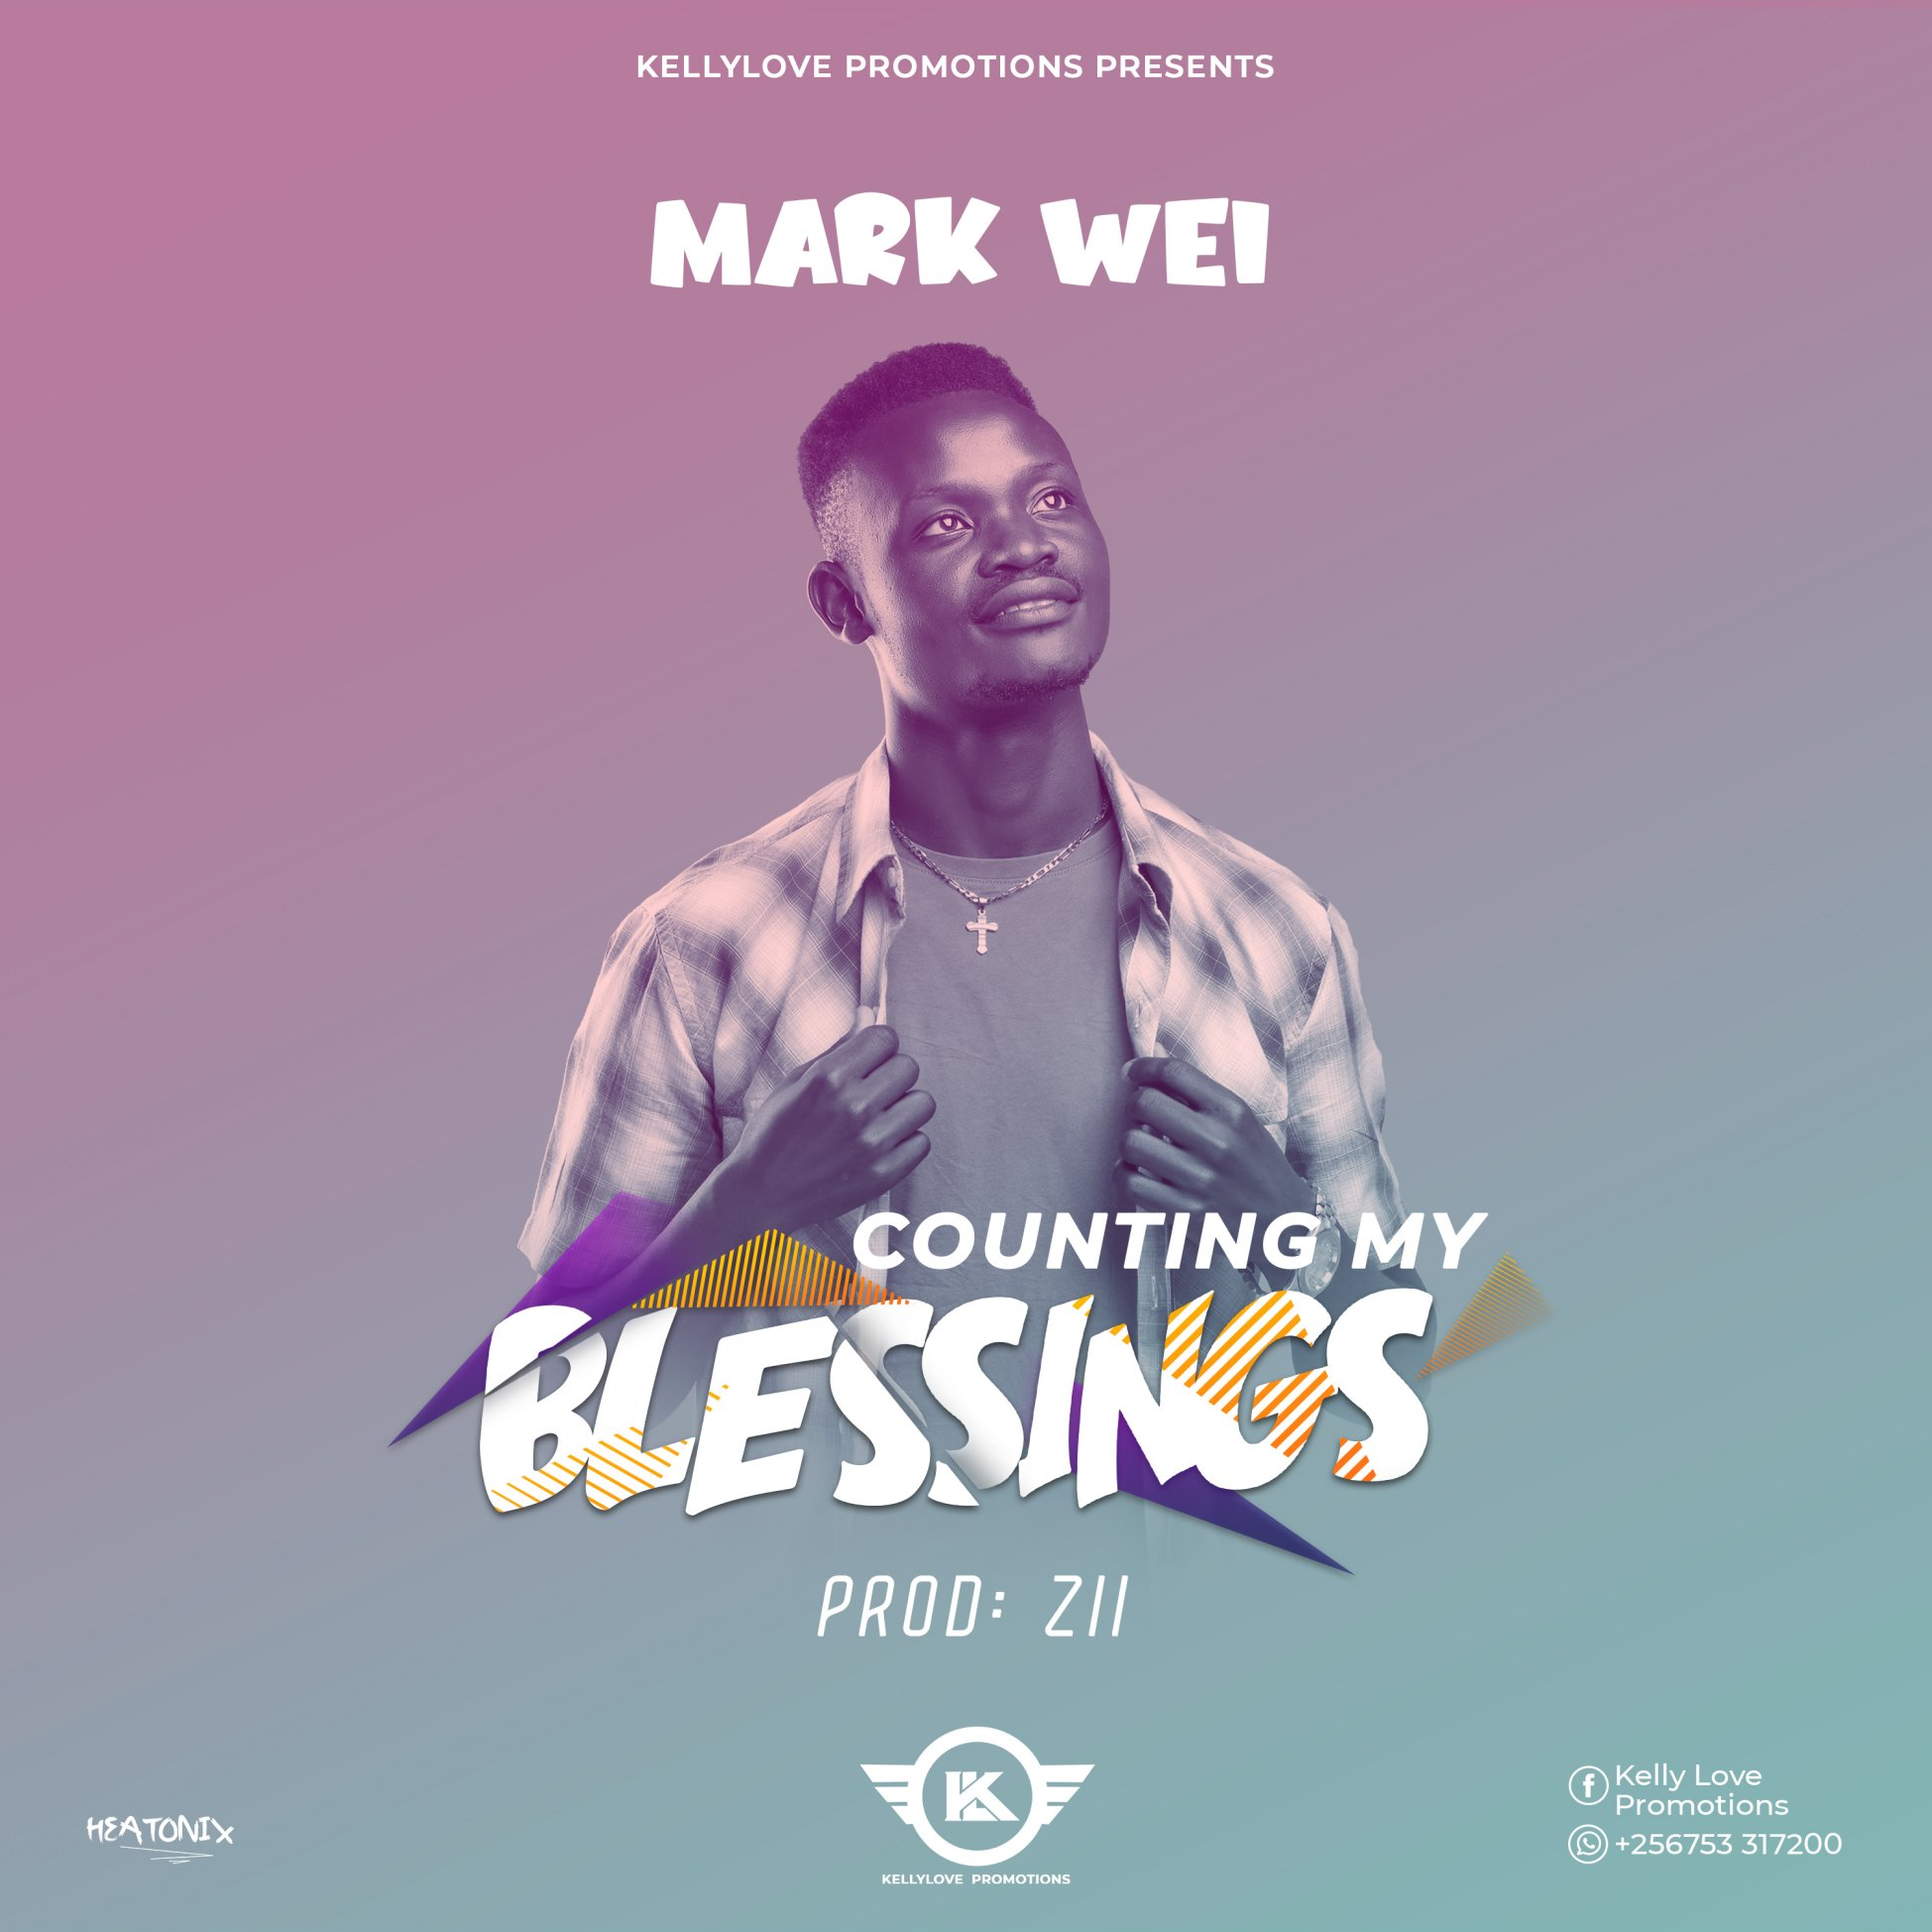 Mark Wei - COUNTING MY BLESSINGS - music Video